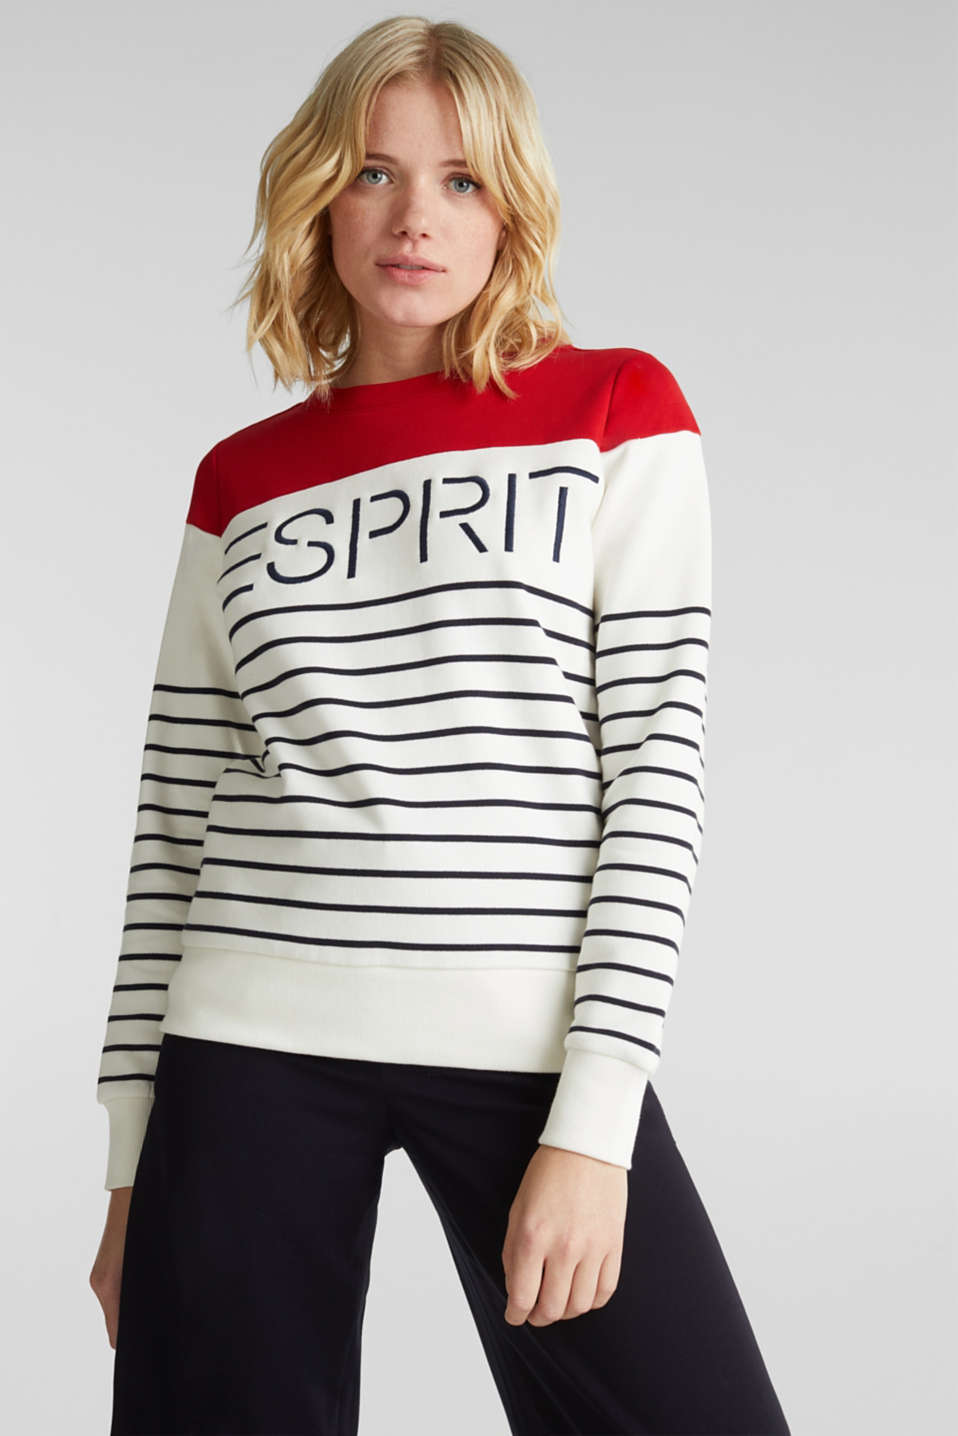 Esprit - Sweatshirt with an embroidered logo